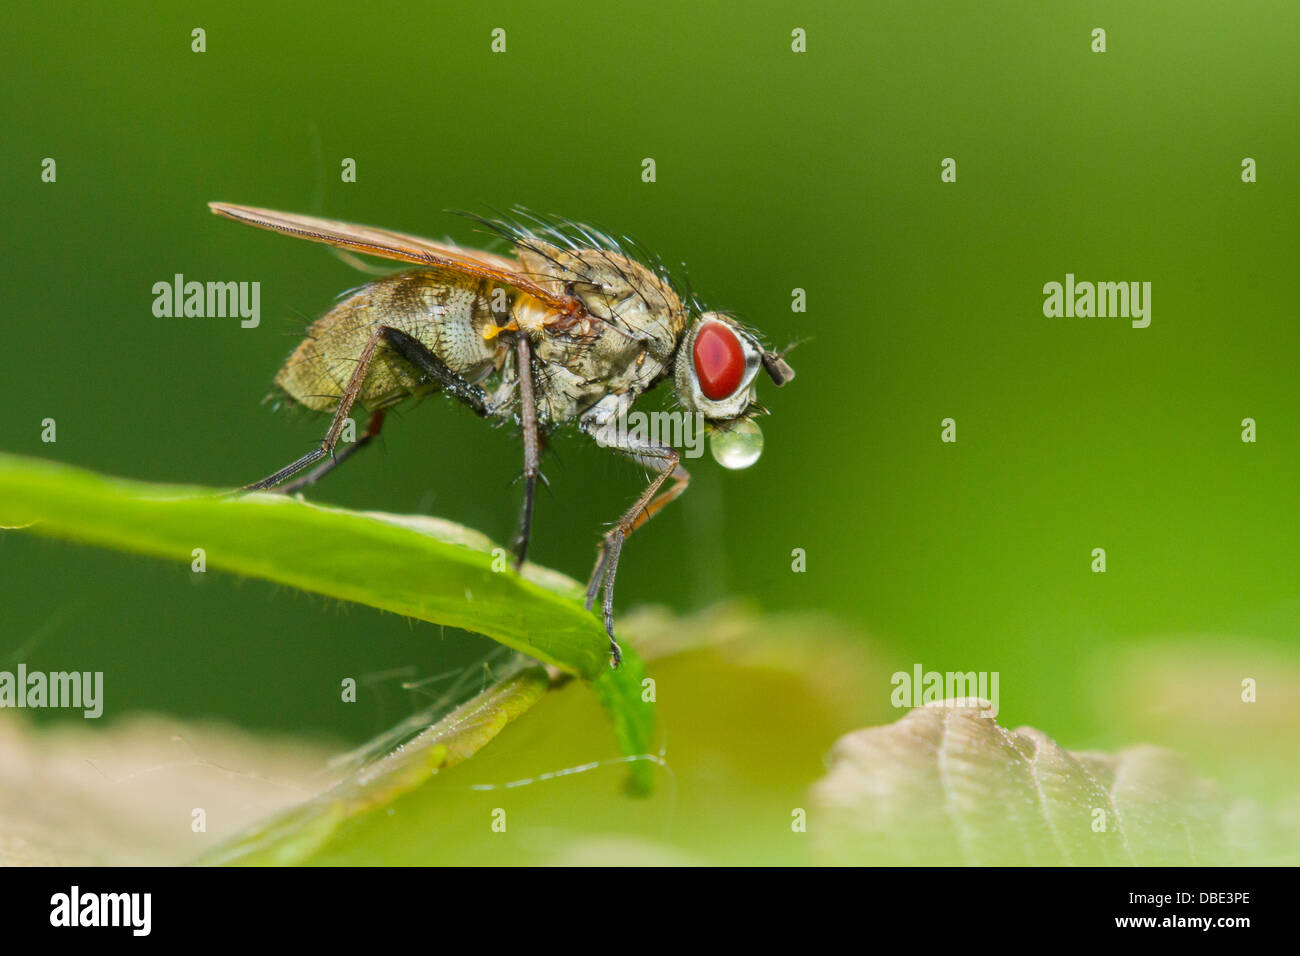 Tachinid fly perched on a green leaf, making bubbles. Stock Photo